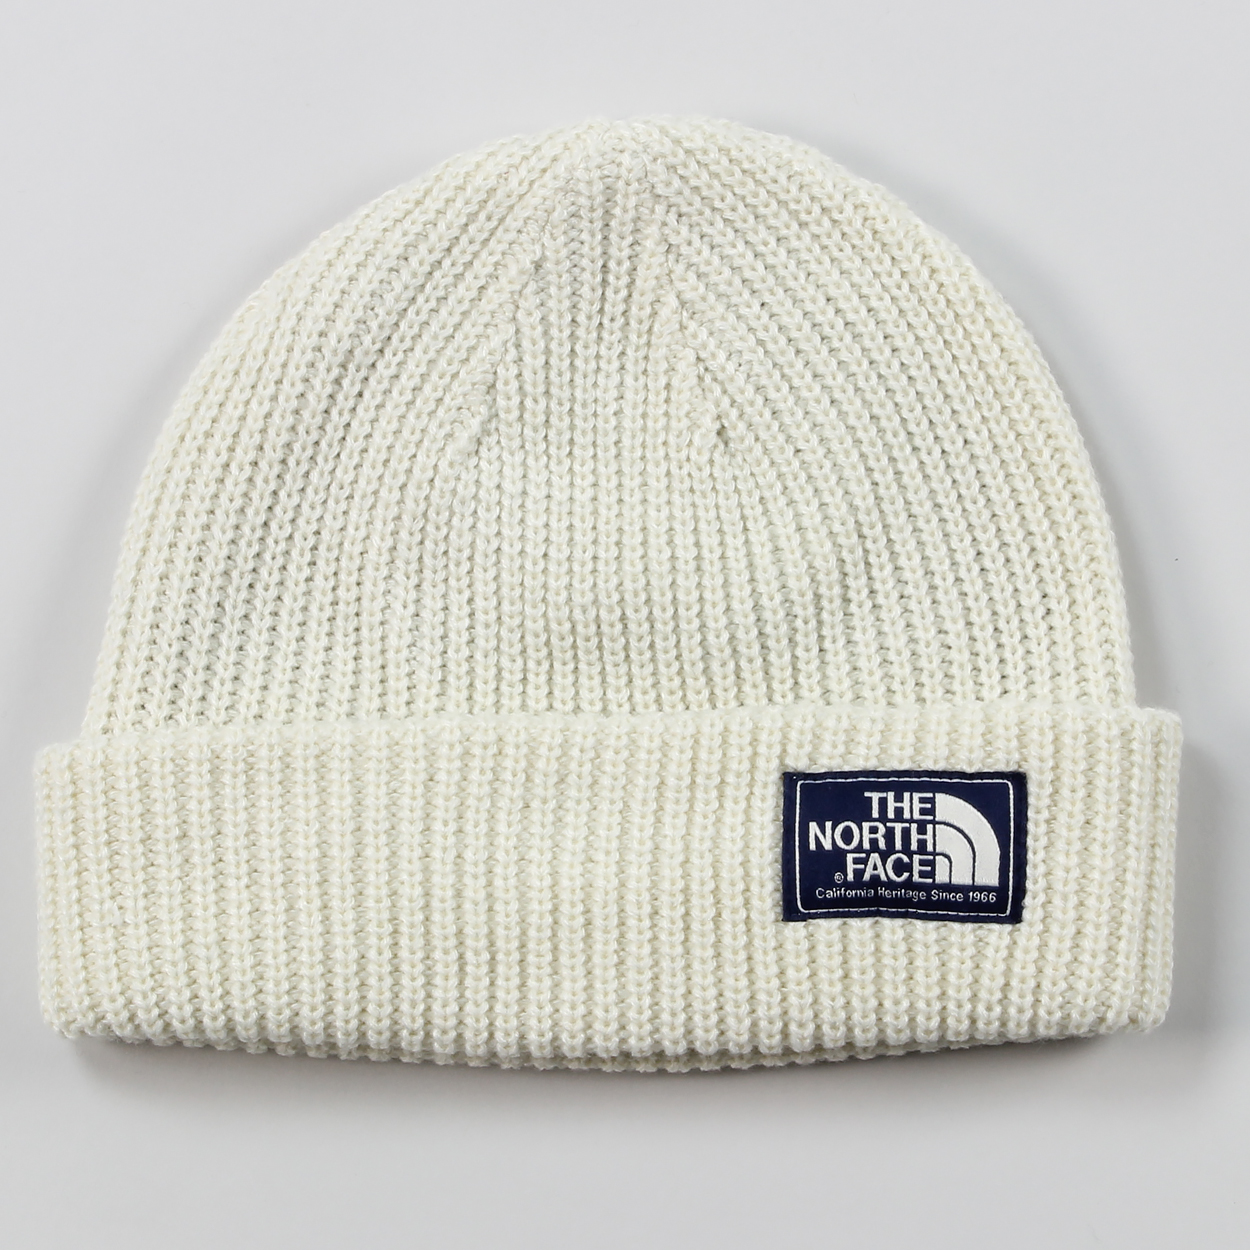 524140a35 The North Face Mens One Size Salty Dog Beanie Vintage White £15.00